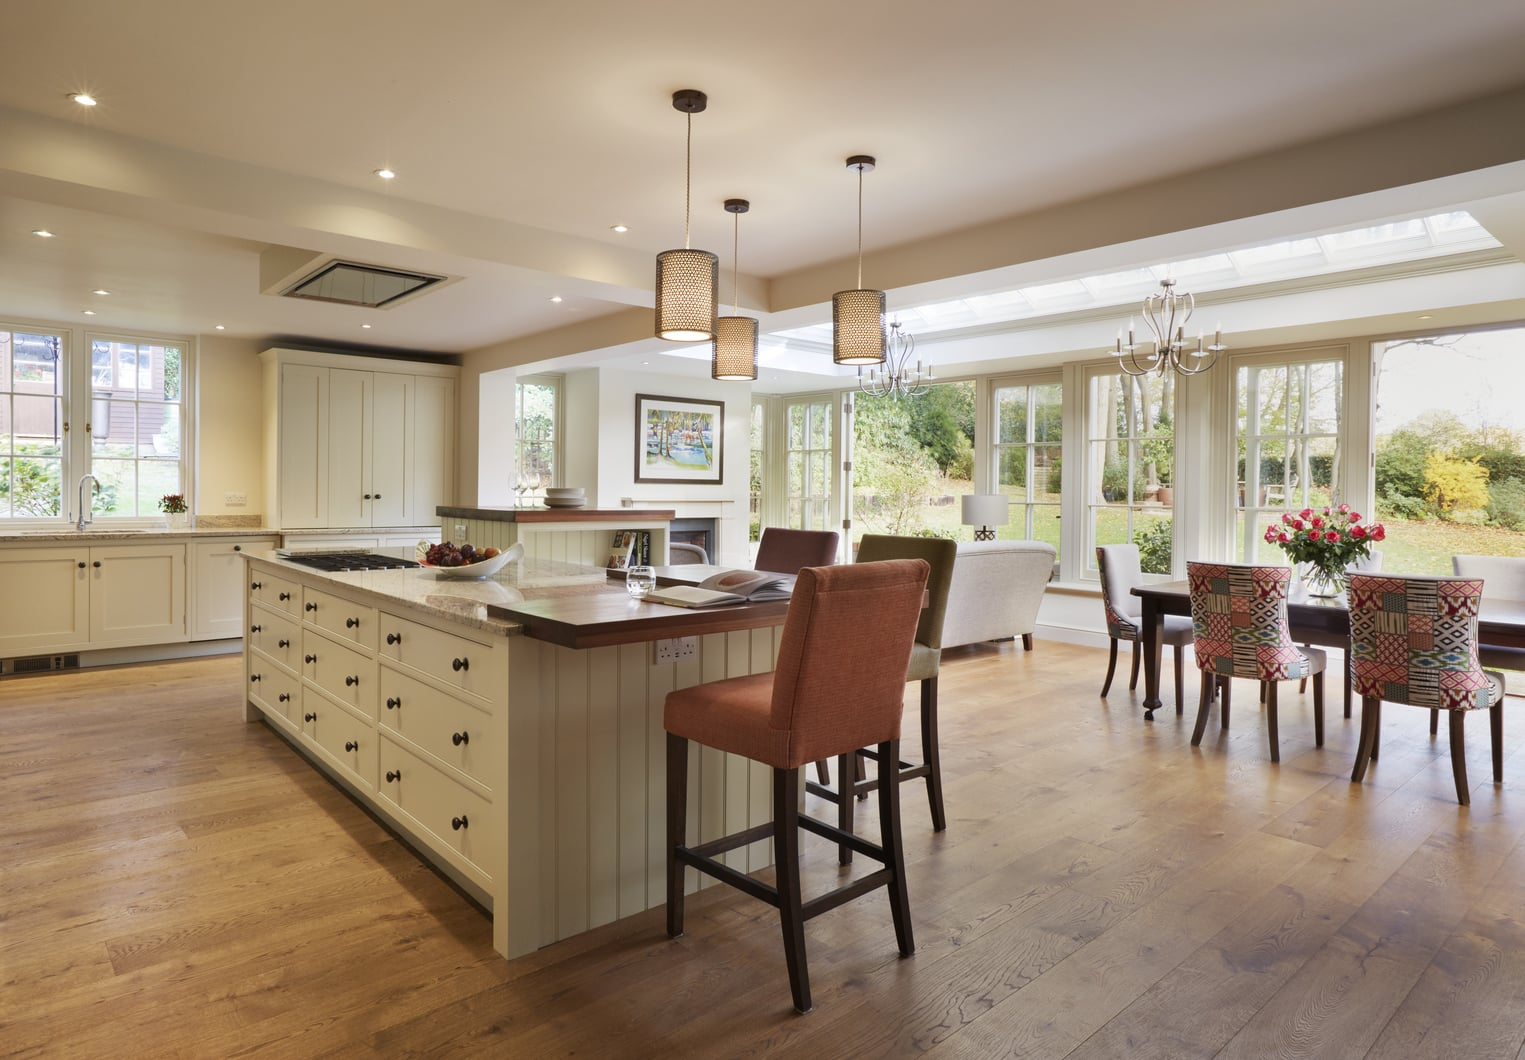 Client Testimonial Stunning And Spacious Orangery With Open Kitchen Diner